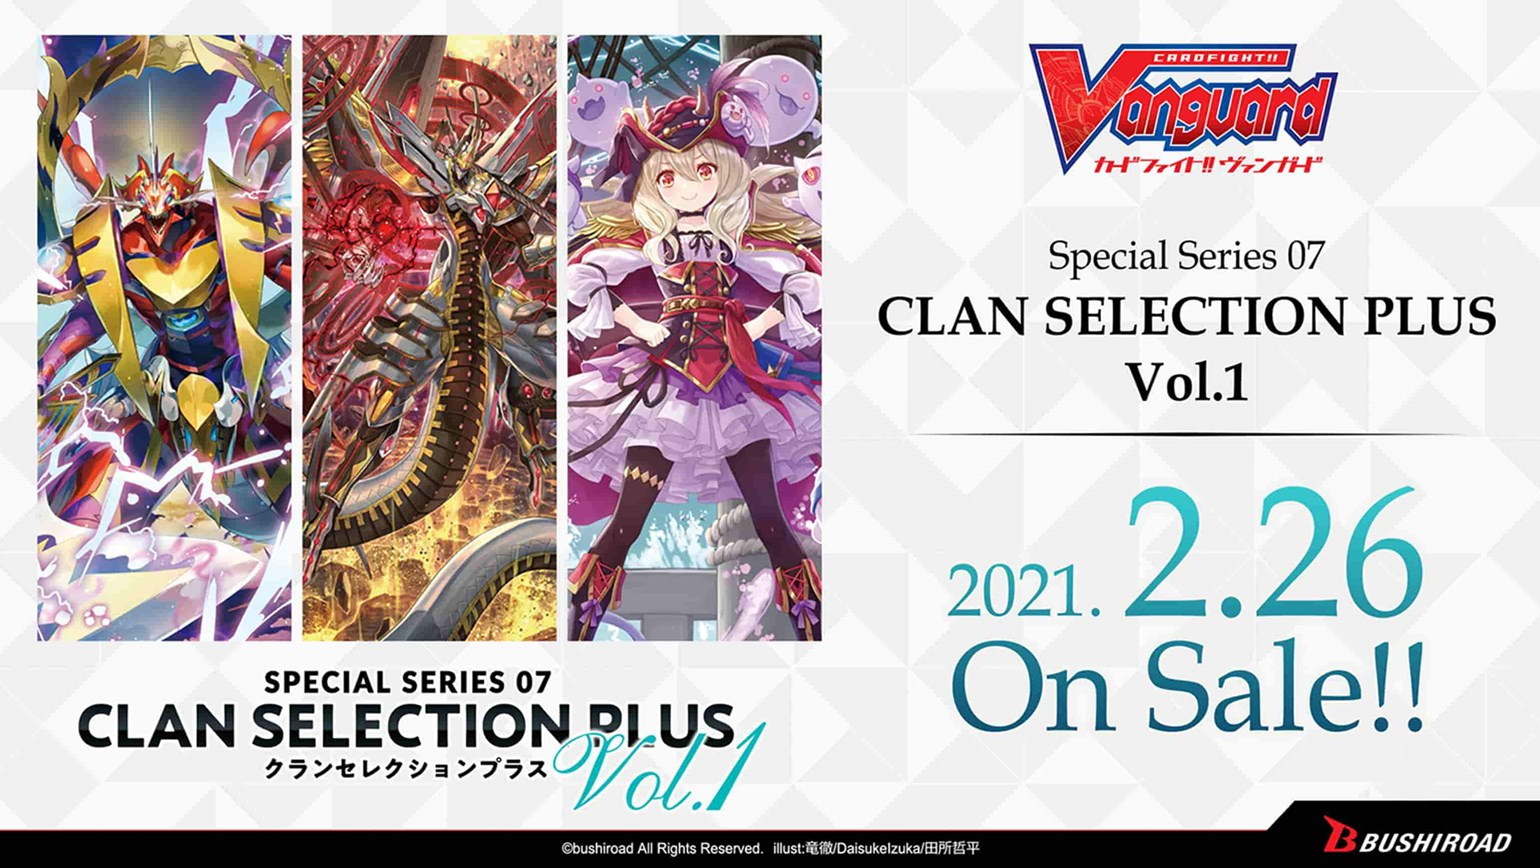 New English Edition Special Series 07 Clan Selection Plus Vol.1 is Coming to Stores on February 26th!